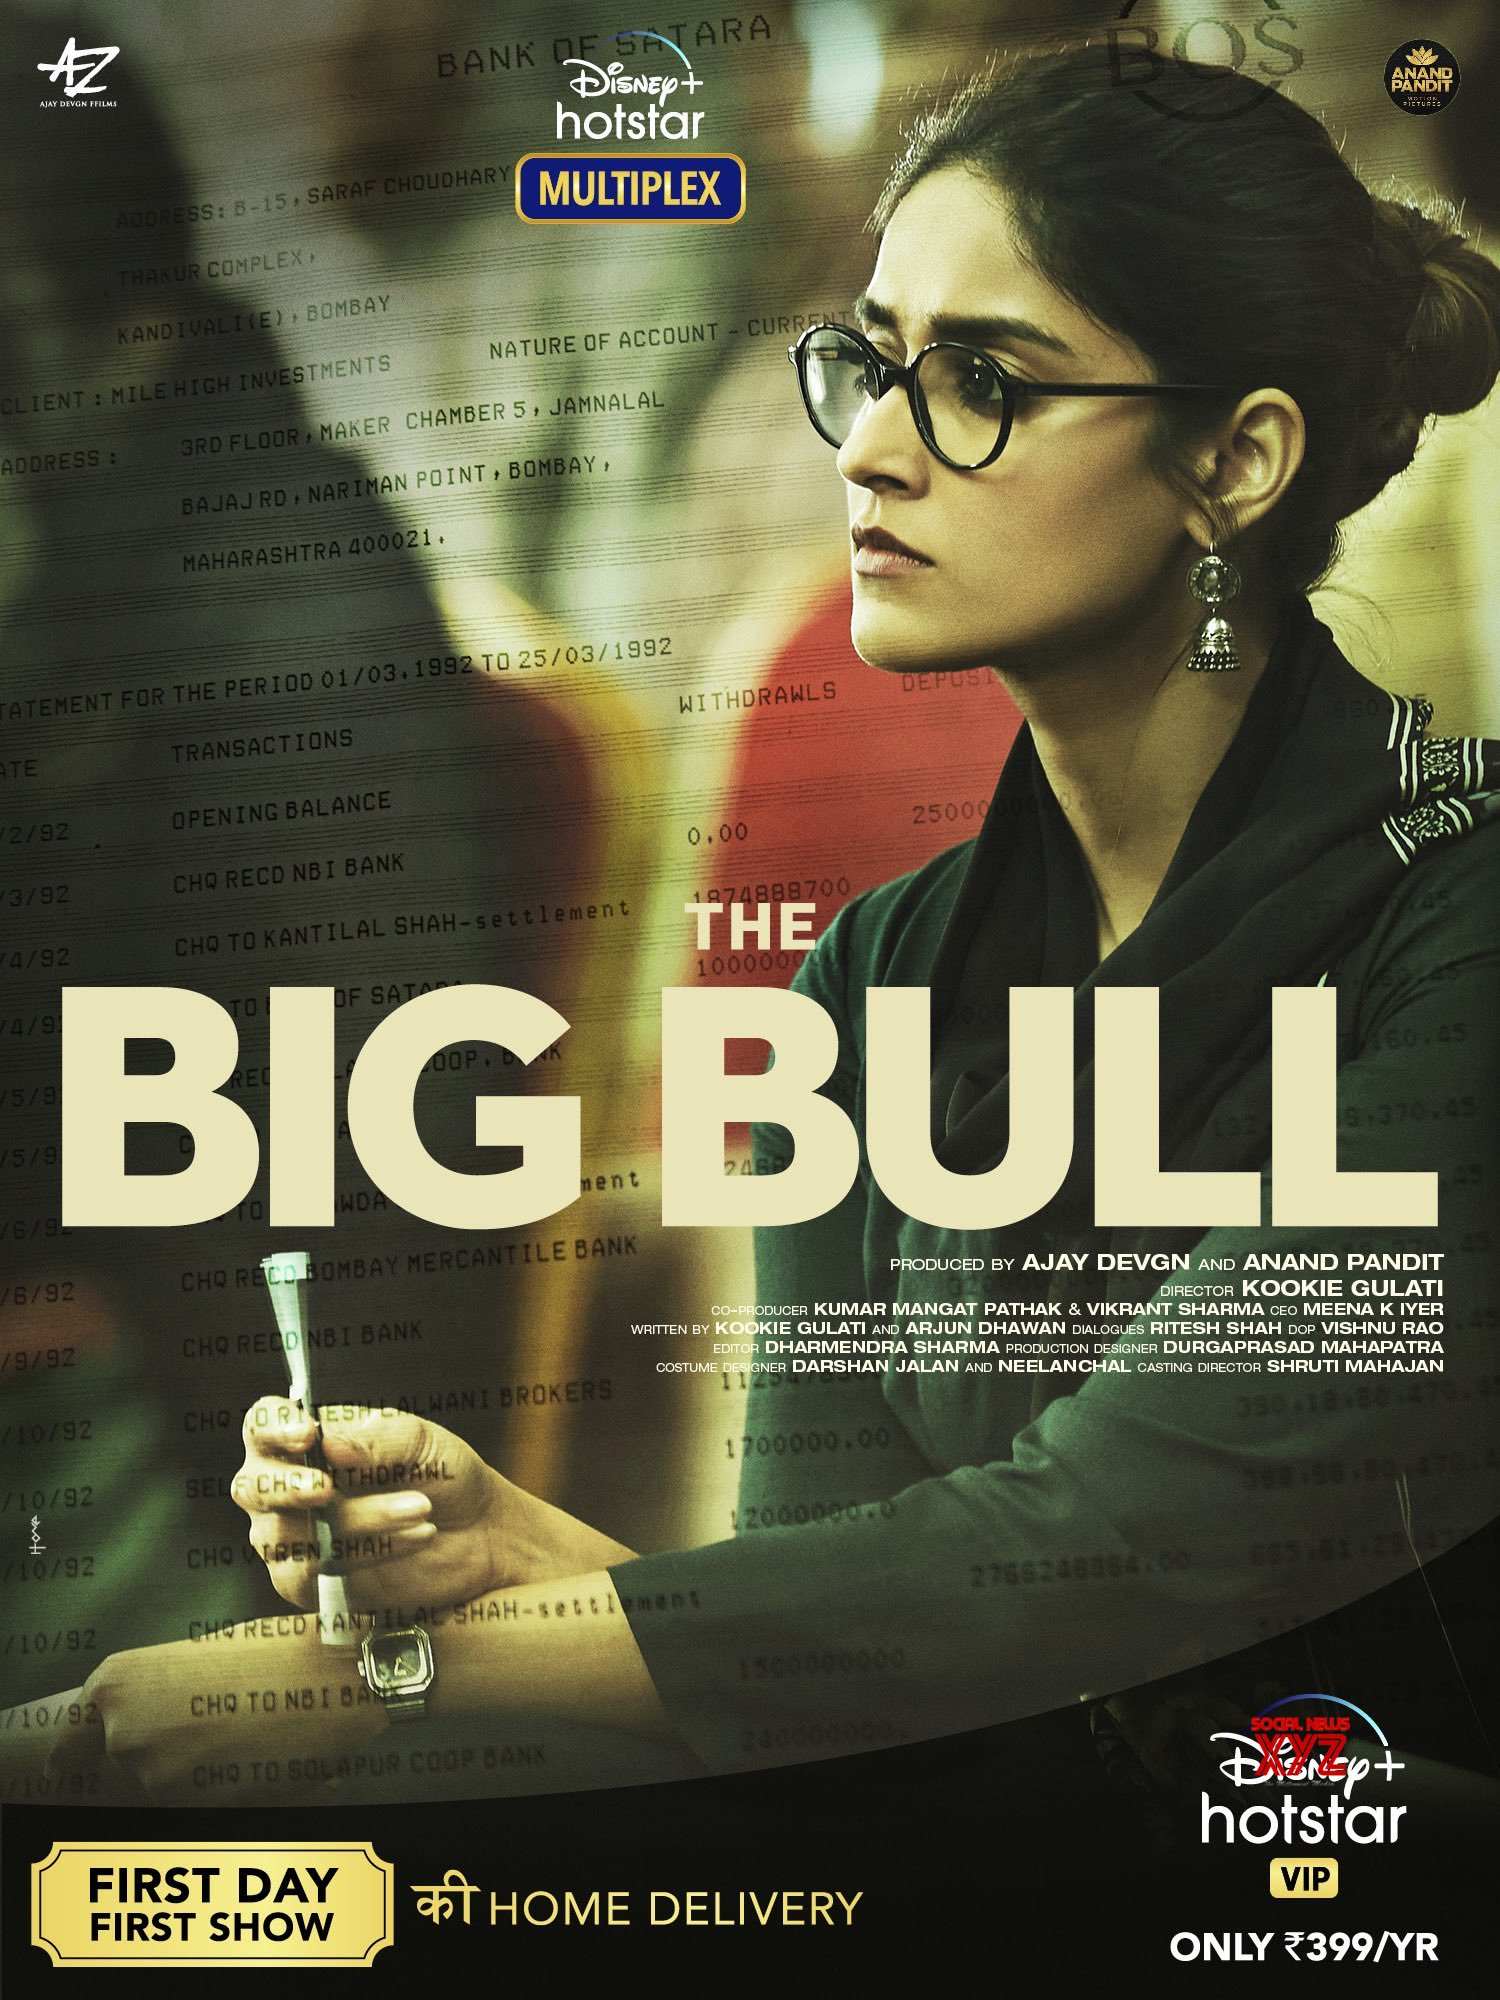 the big bull movie story cast and release date